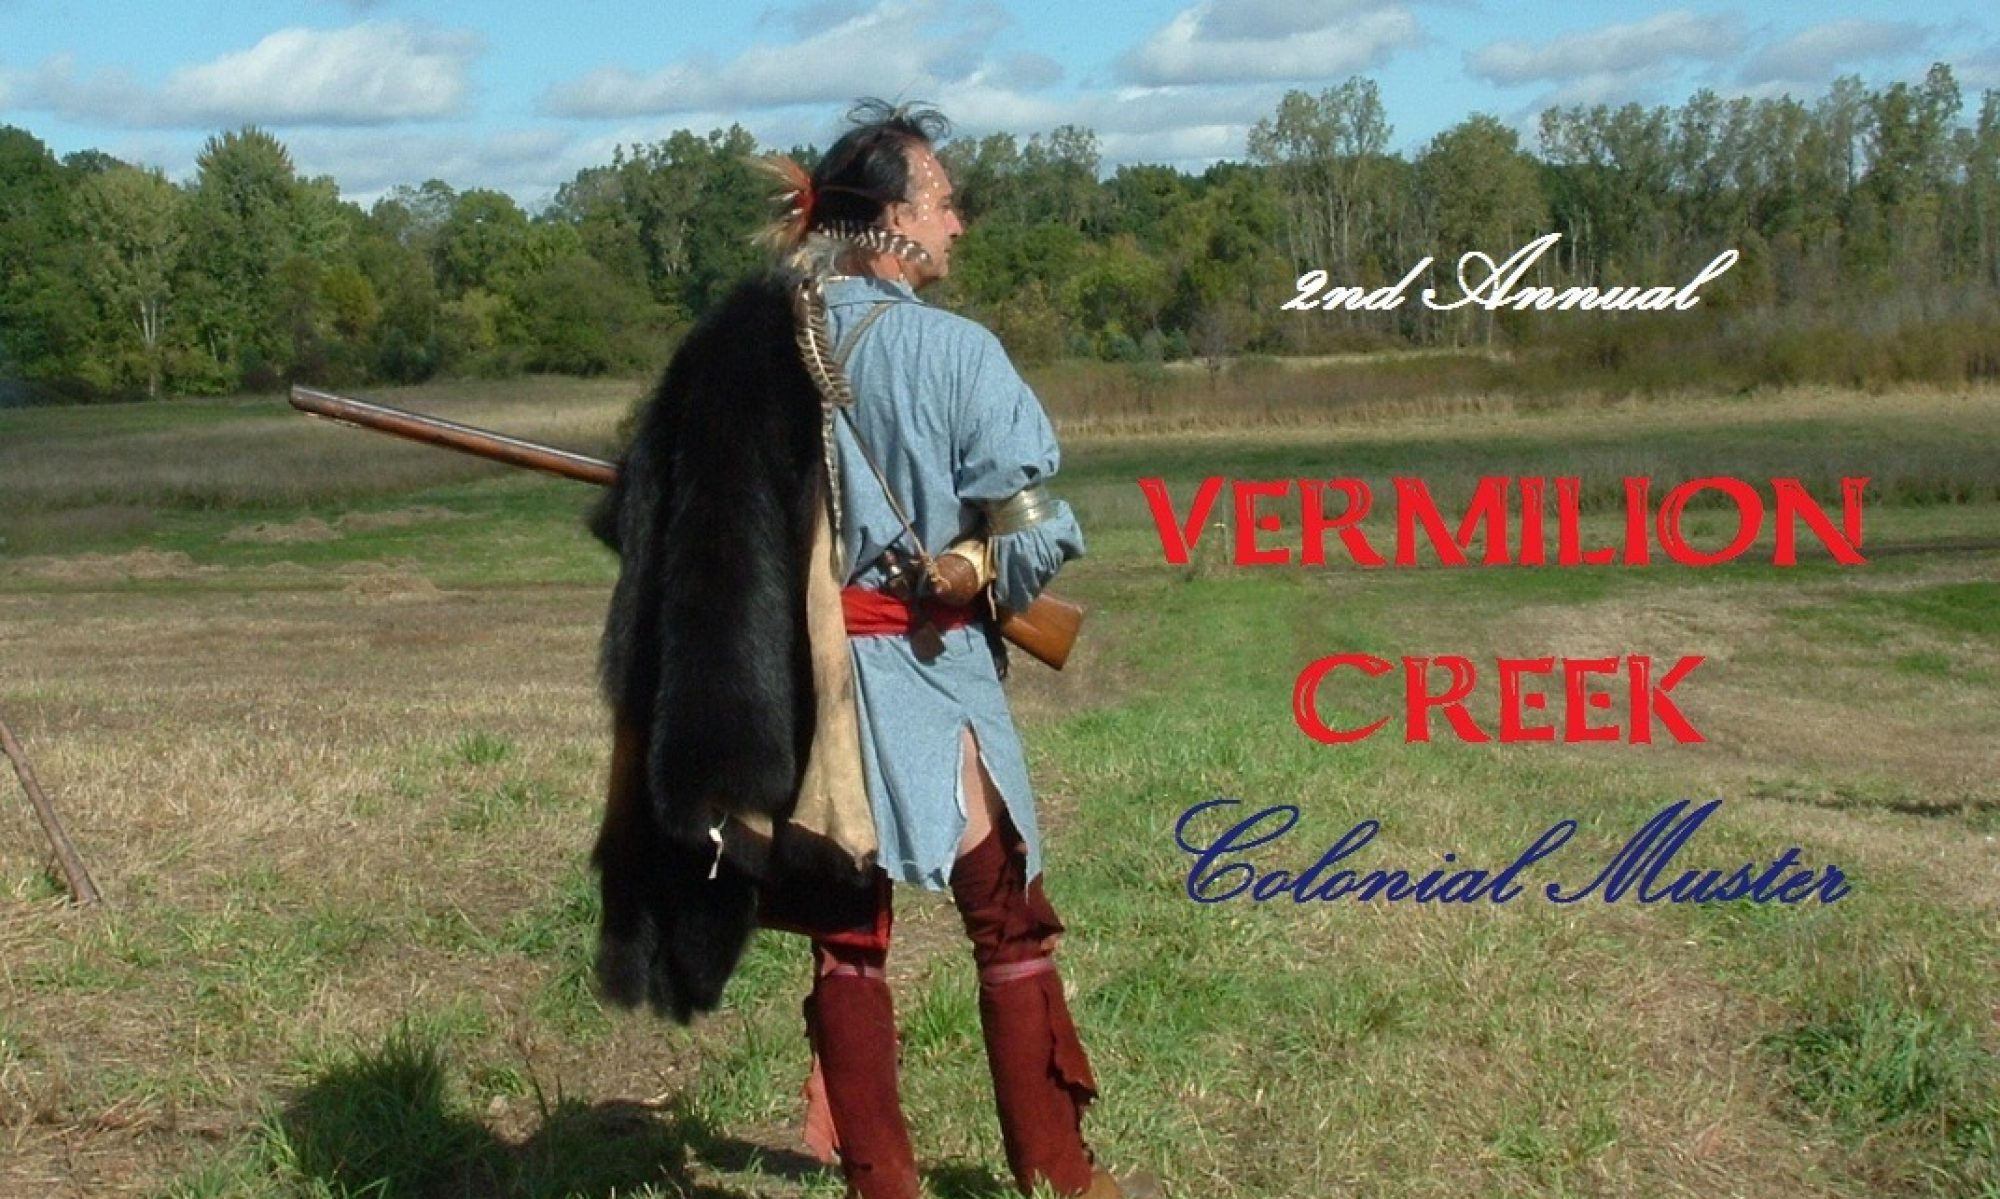 Vermilion Creek Colonial Muster